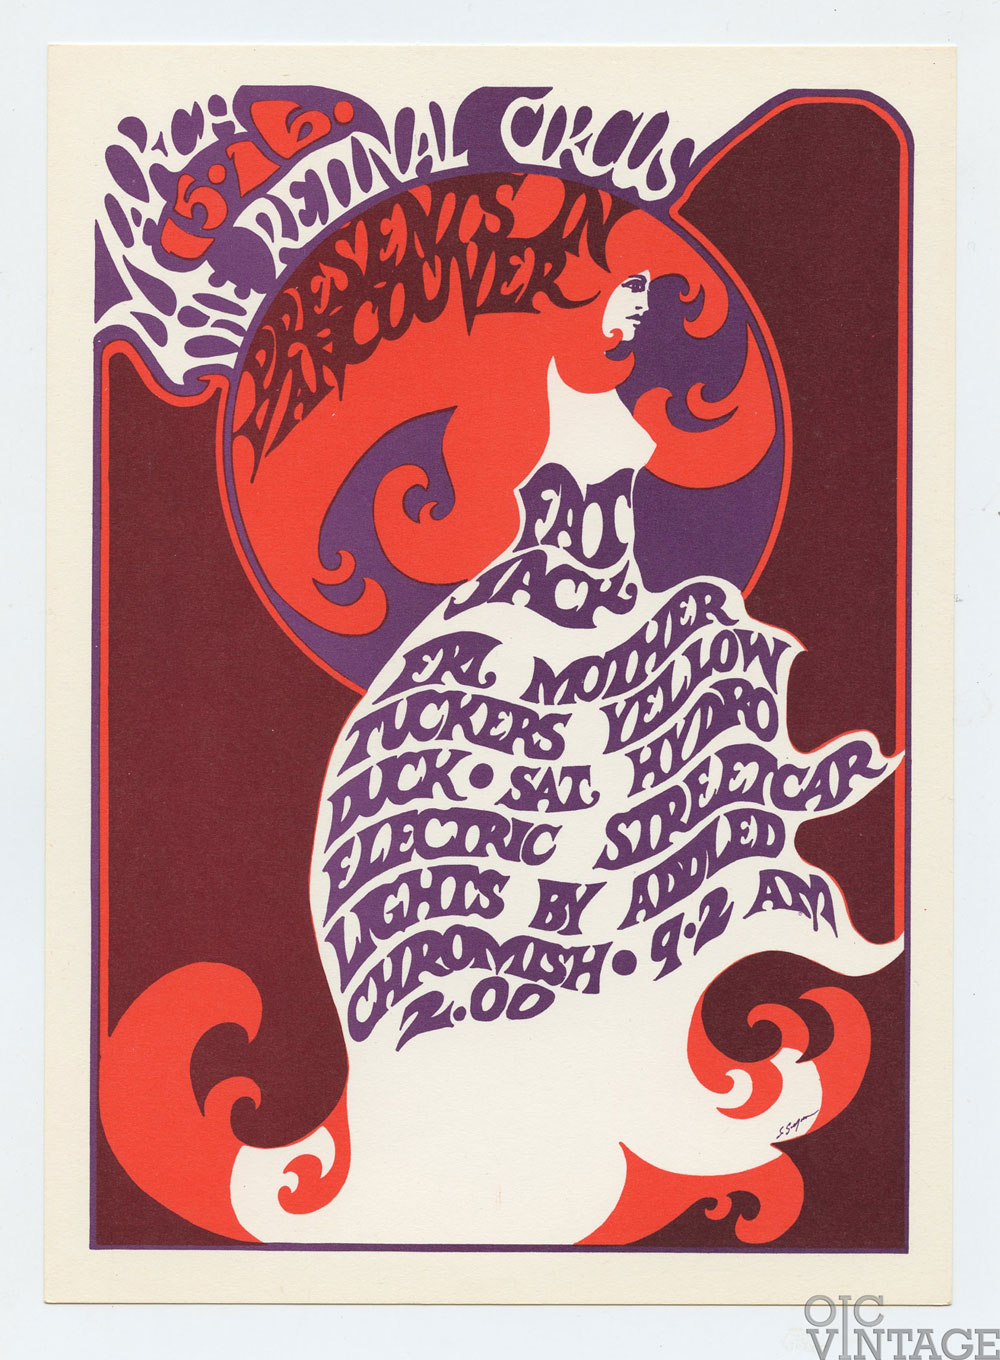 Retinal Circus Postcard 1968 Mar 15 Fat Jack Mother Tuckers Yellow Duck Vancouver Canada